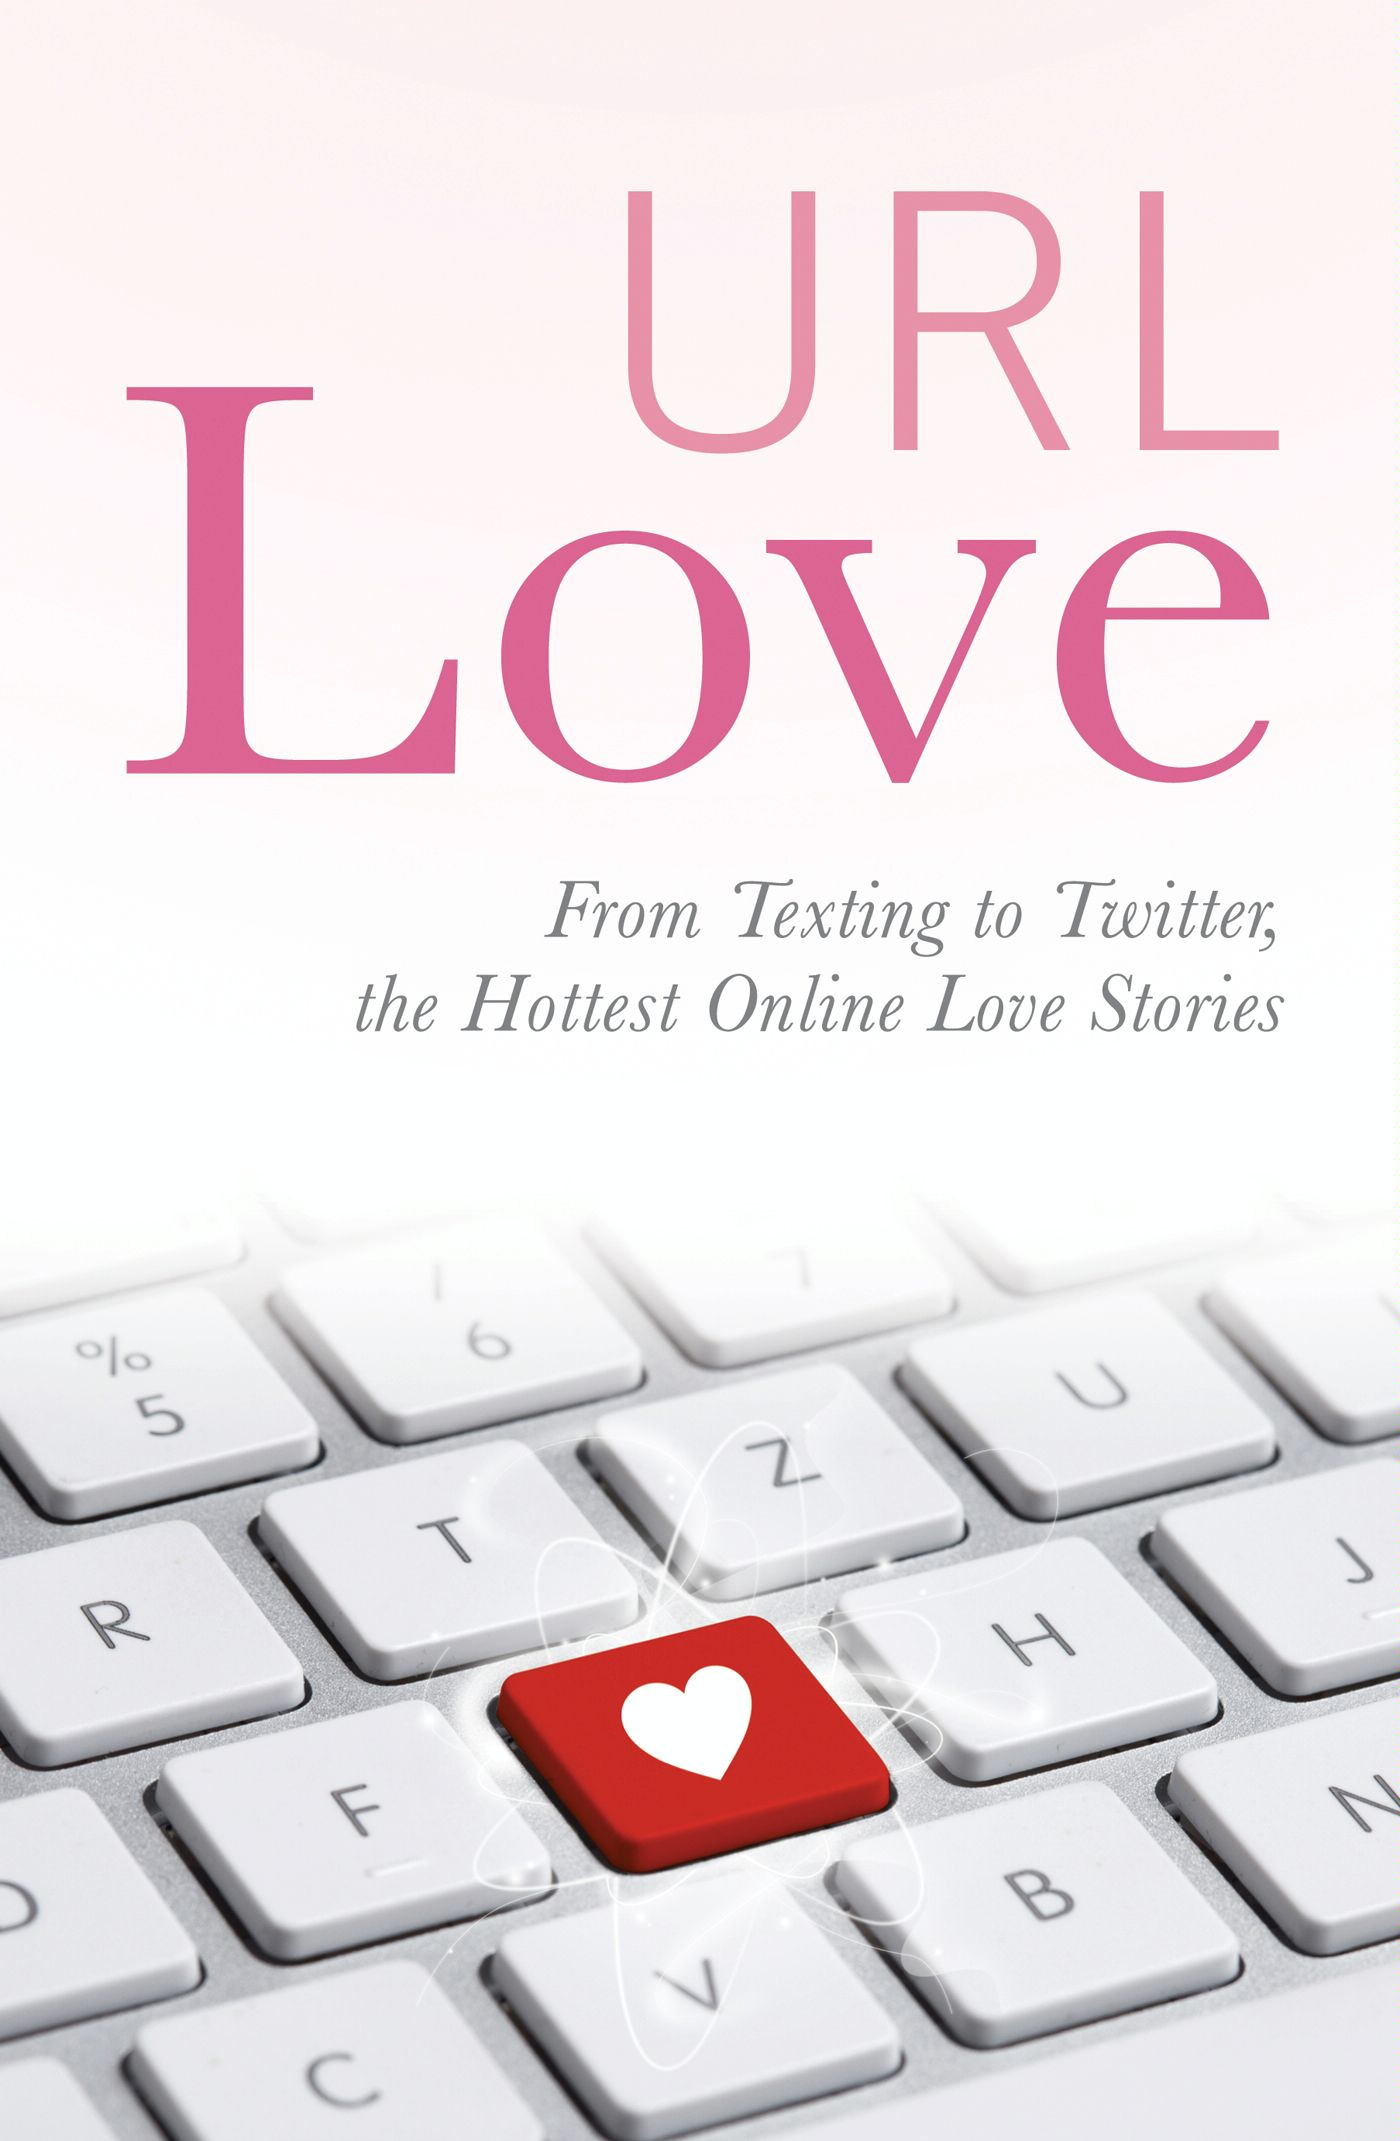 URL Love: From Texting to Twitter, the Hottest Online Love Stories By: URL Love Contributors